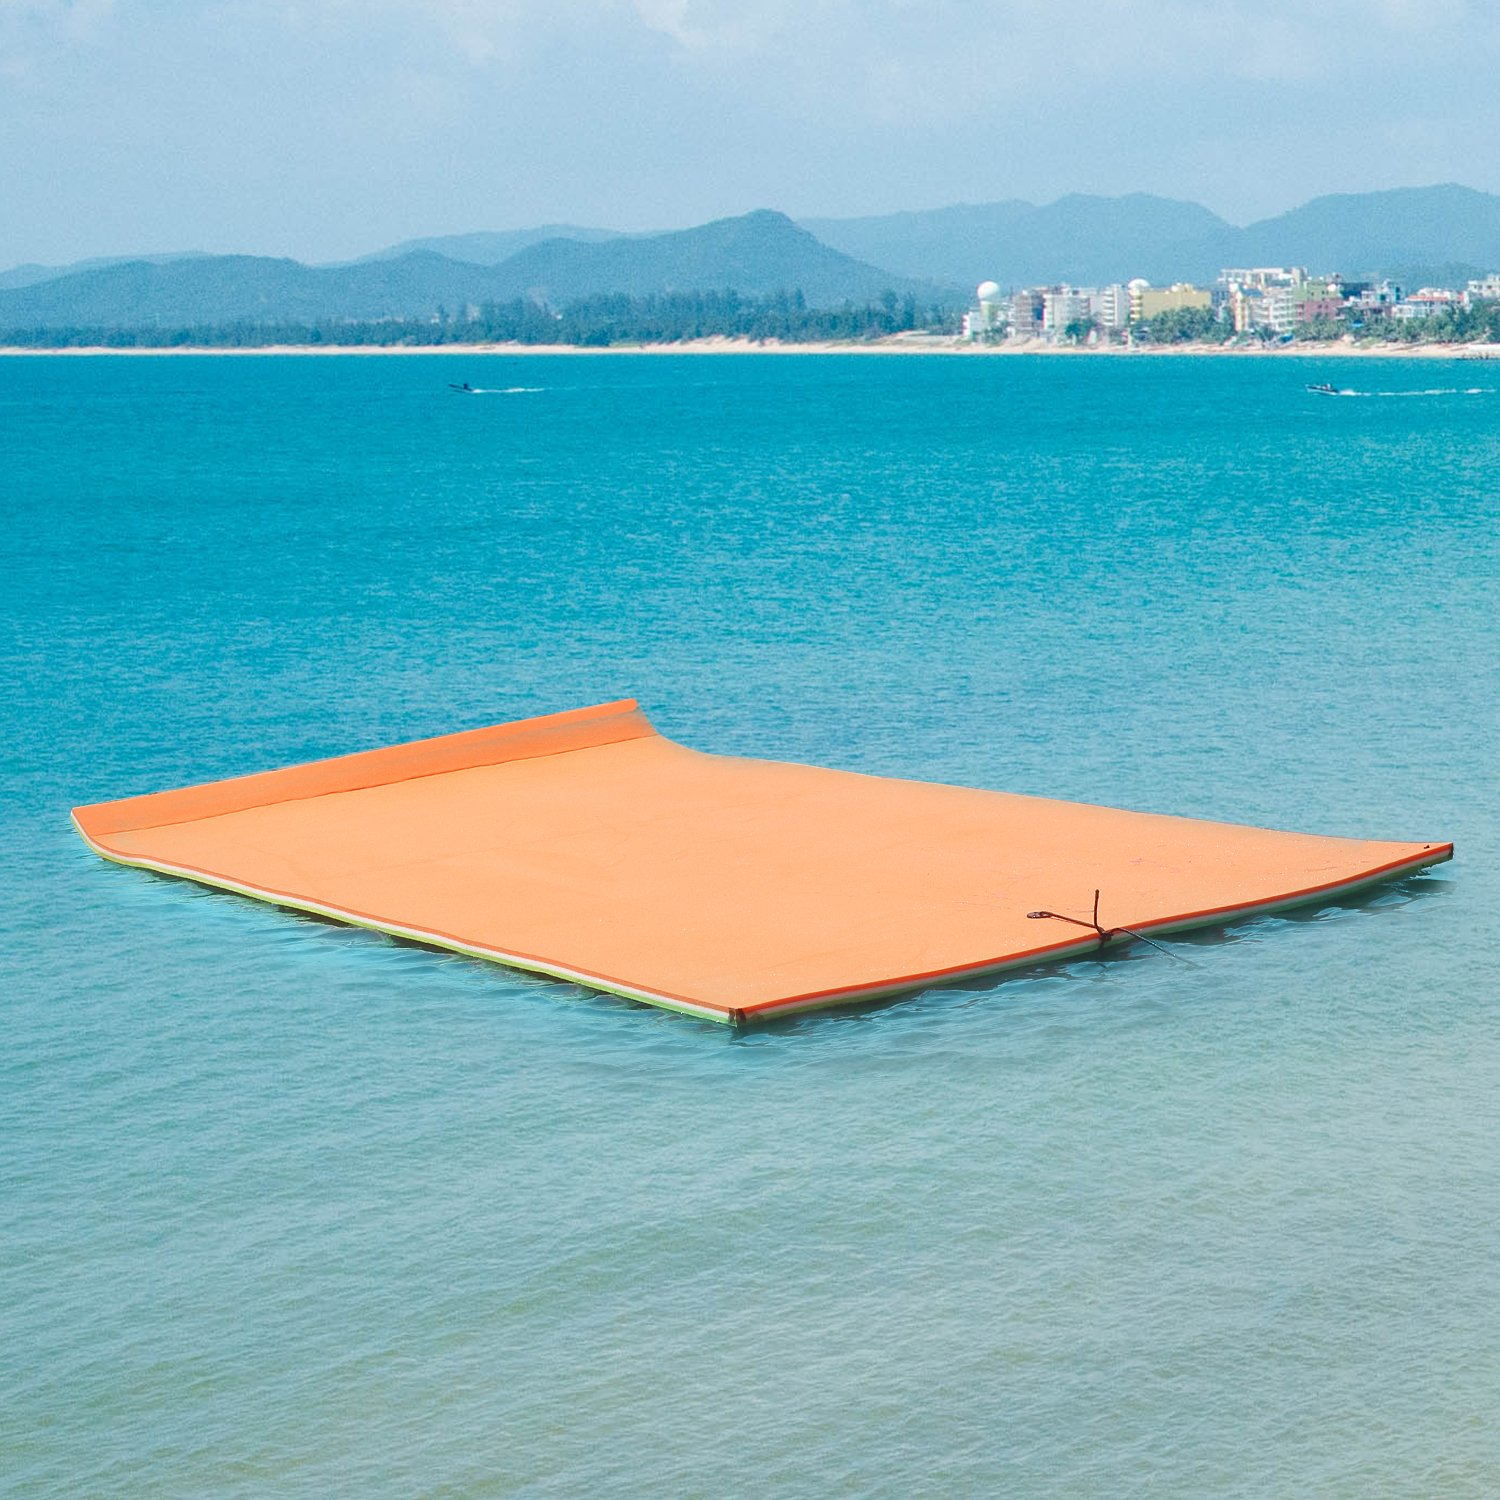 LEISURELIFE 18'x6' Floating Water Mat for Lake Pool - Floating Foam Pad Designed for Adults 1300 LB by LEISURELIFE (Image #1)